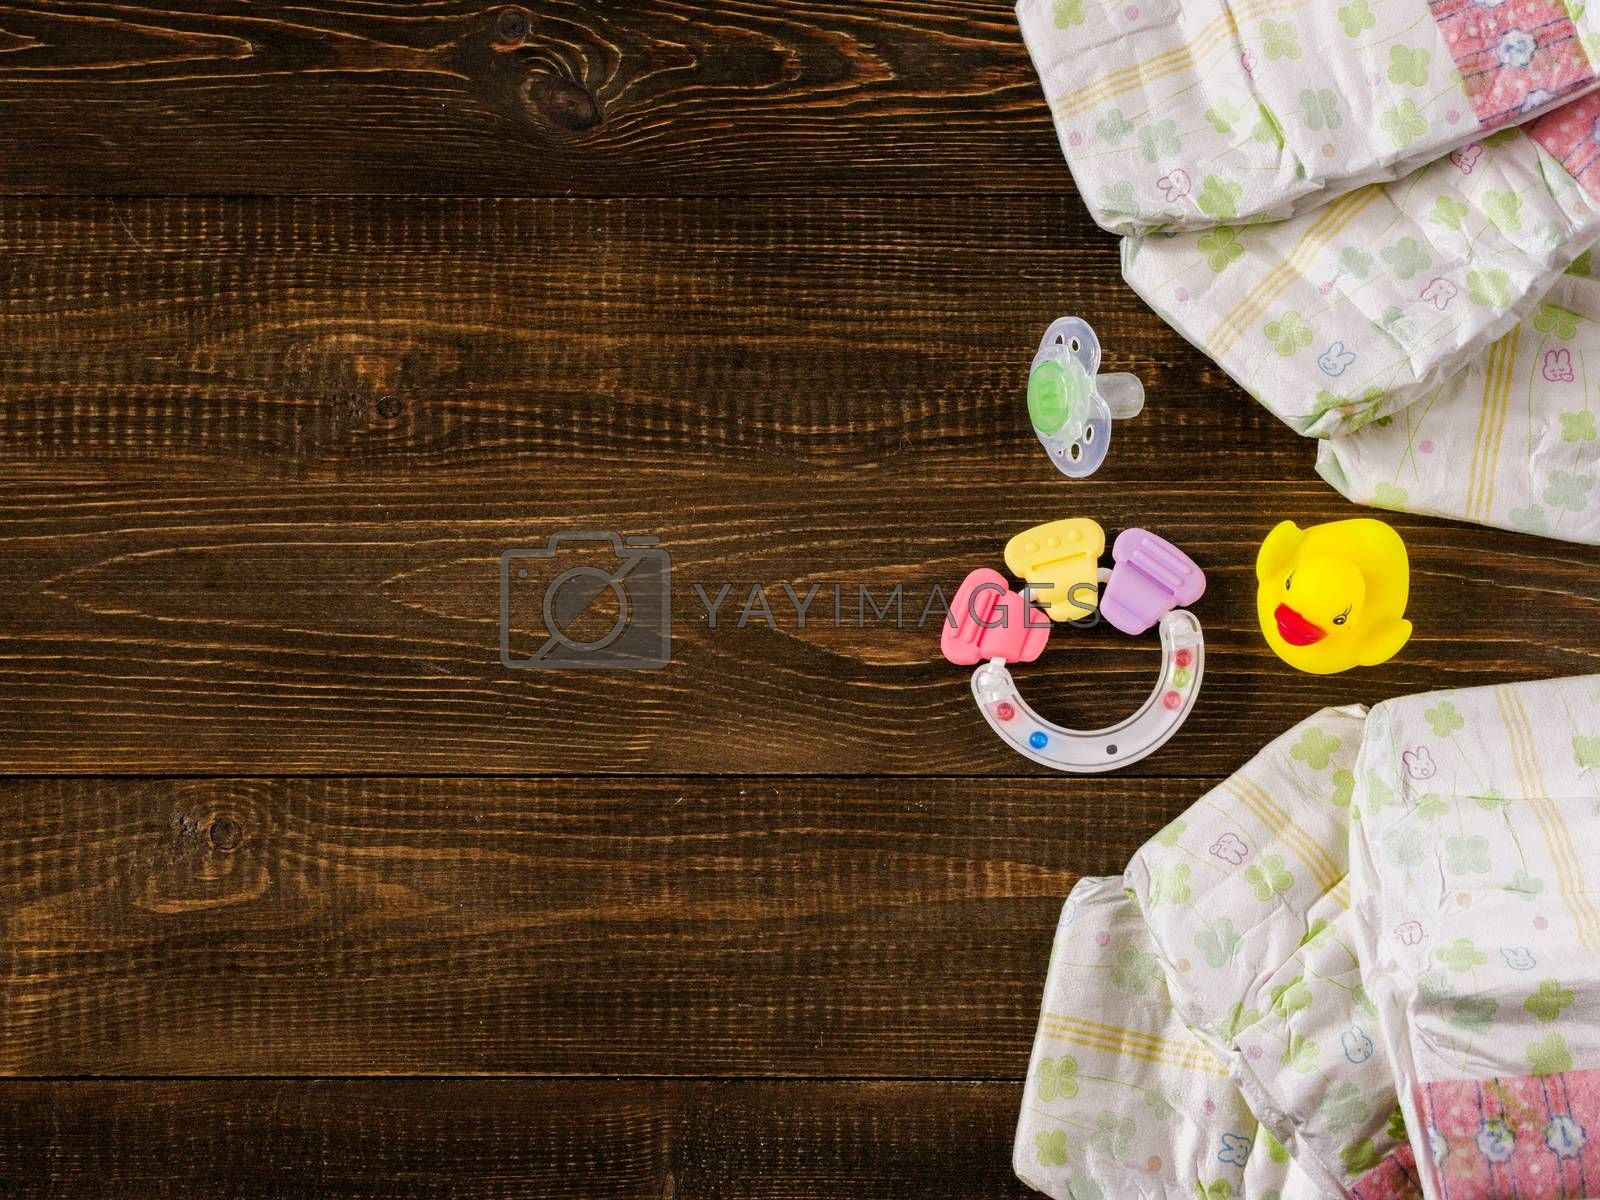 Japanese disposable diapers, teether, dummy and rubber duckling on dark wooden background with copy-space. Flat lay